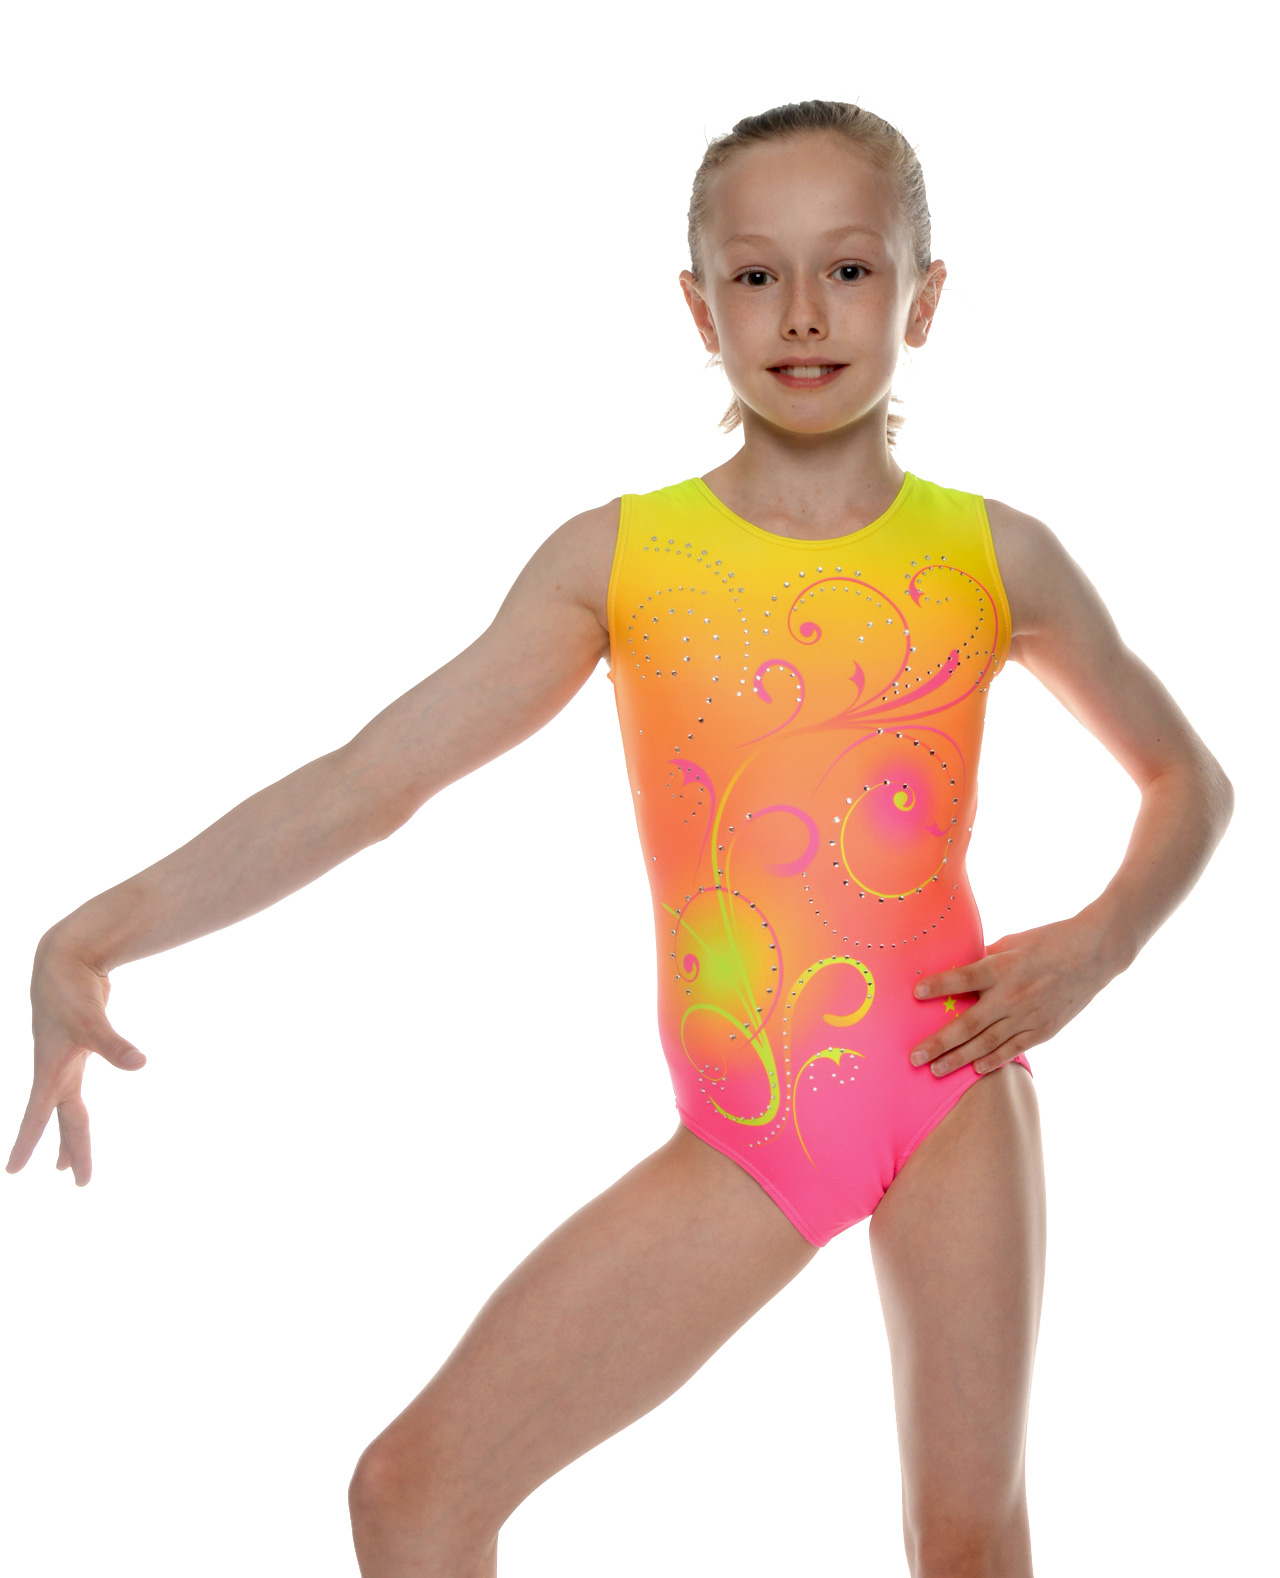 007cfff19 2018 SUMMER DAYZ – Little Stars Leotards